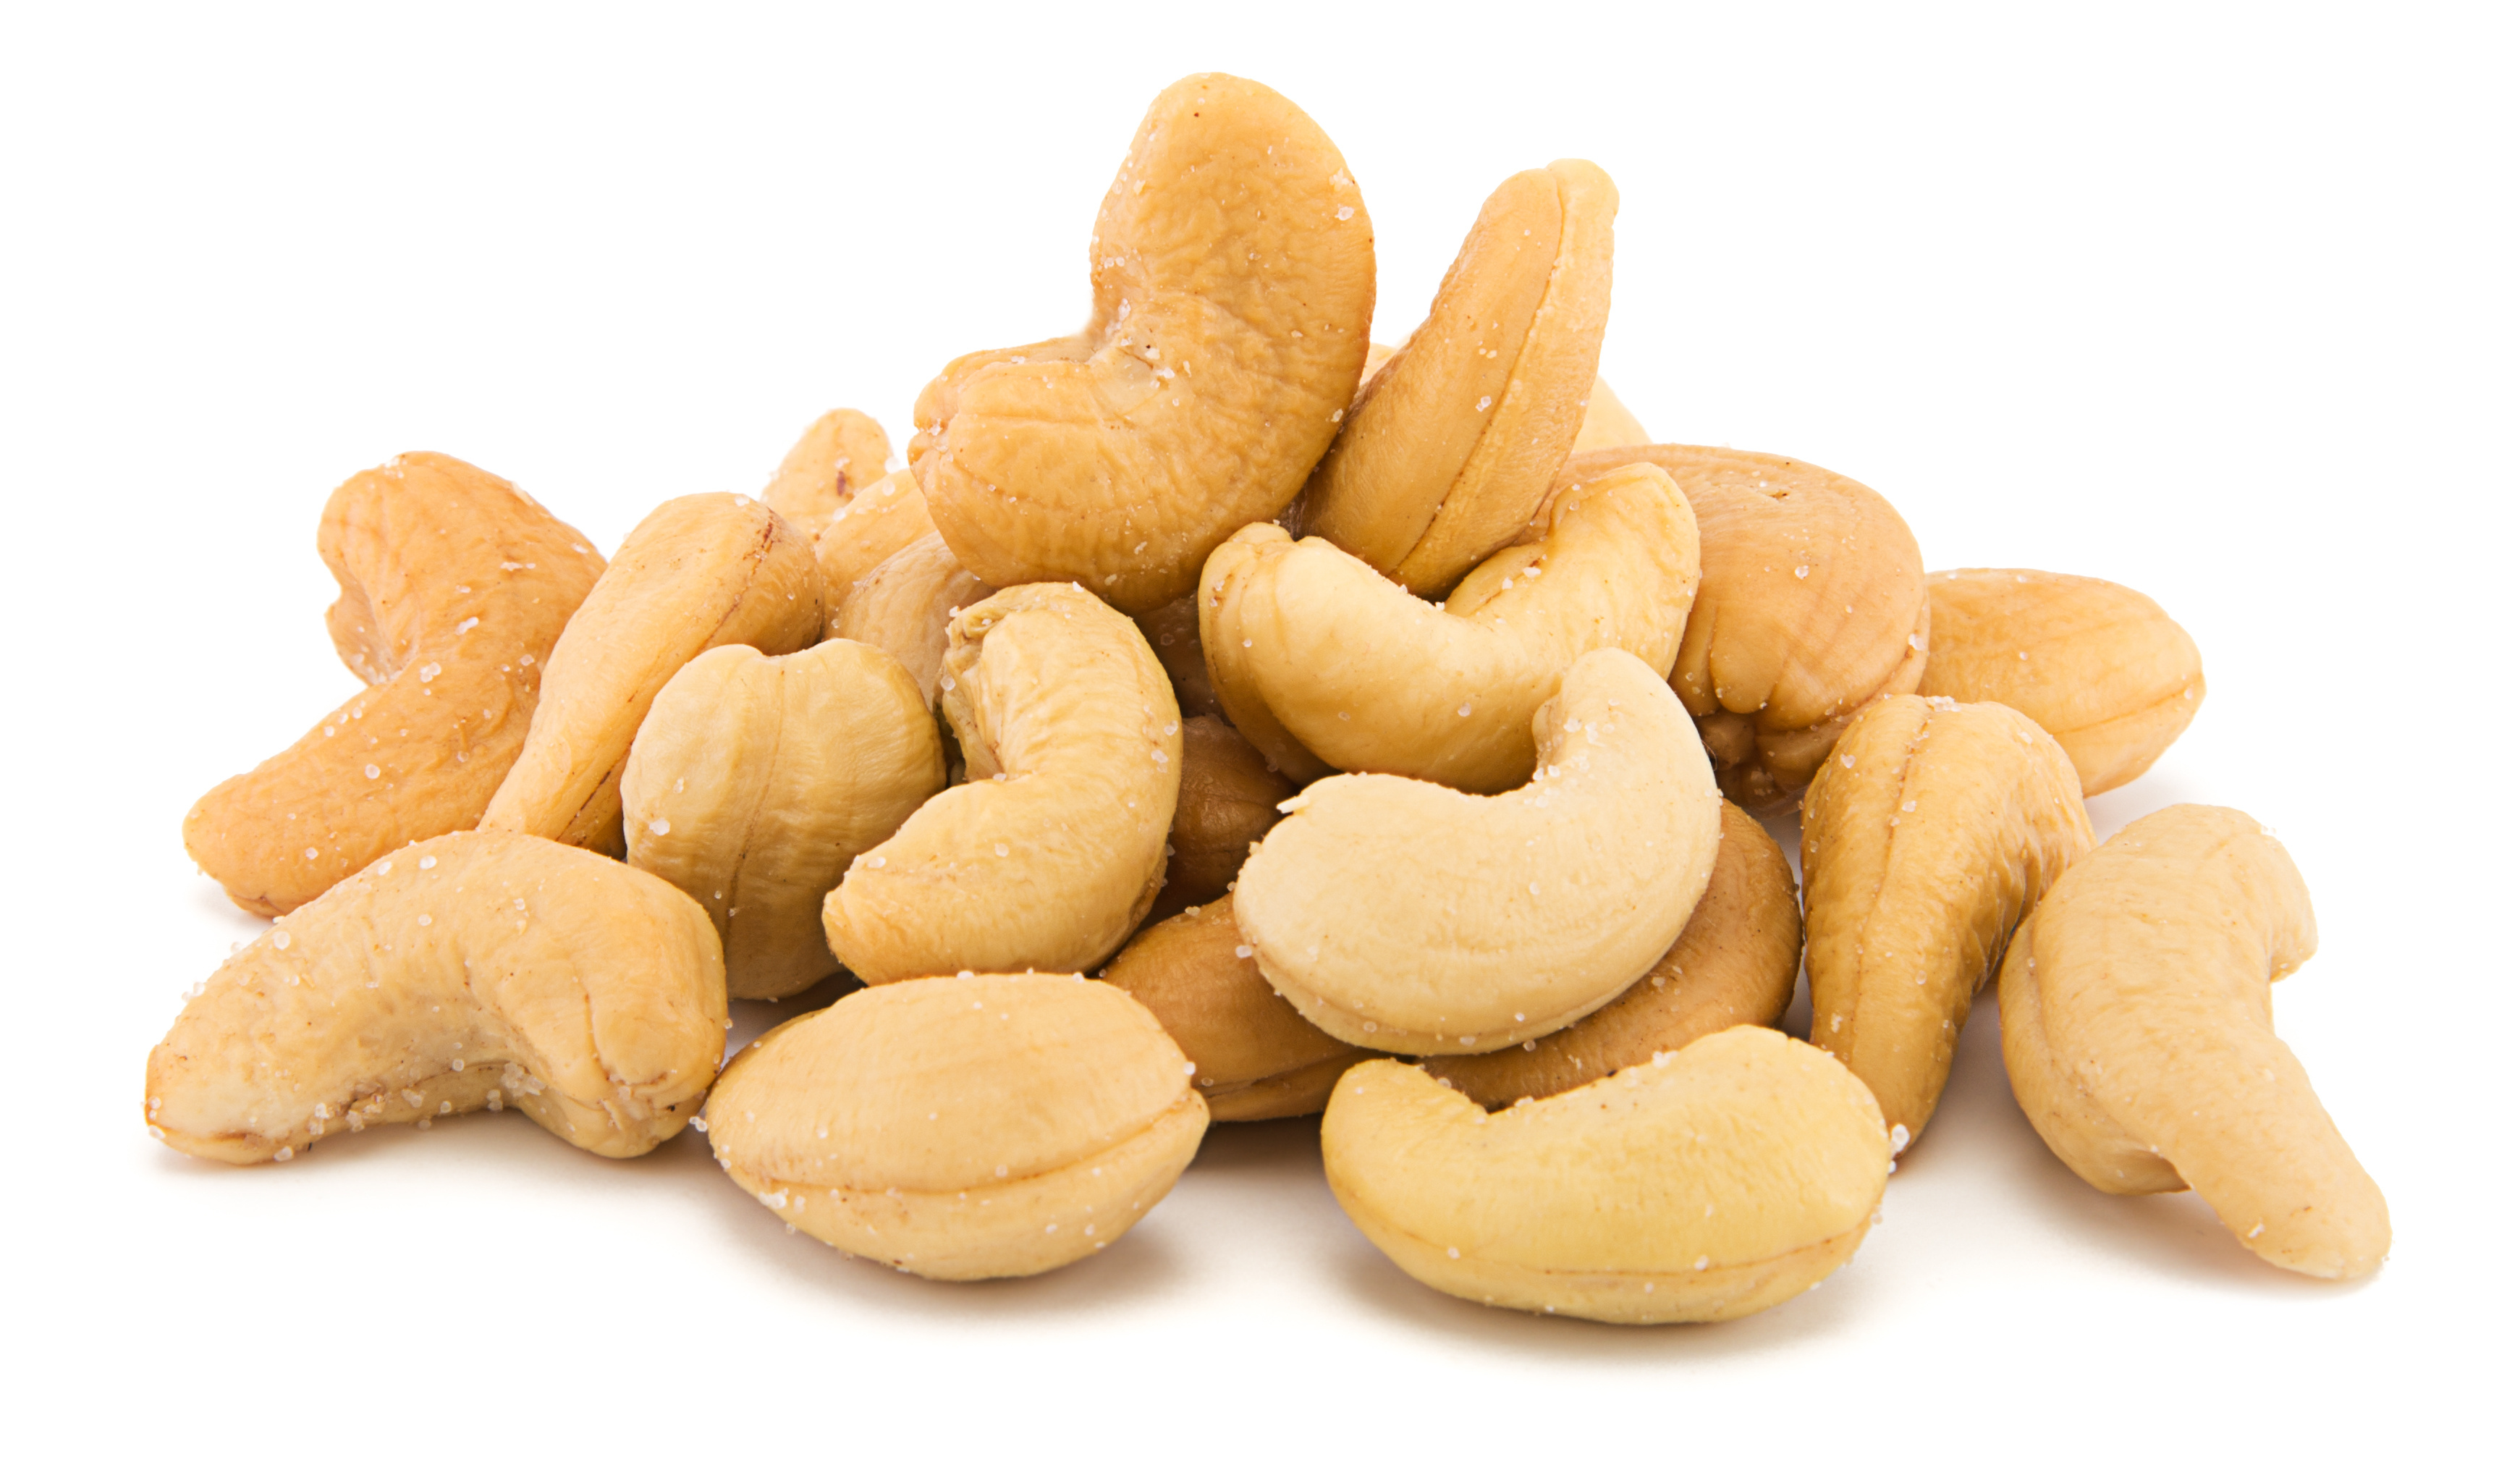 cashew nut international trade Cashews general information cashewnut kernels are mainly used for the snack market as a roasted and salted snack due to the lovely taste, the cashewnut is seen as an upper class nut.